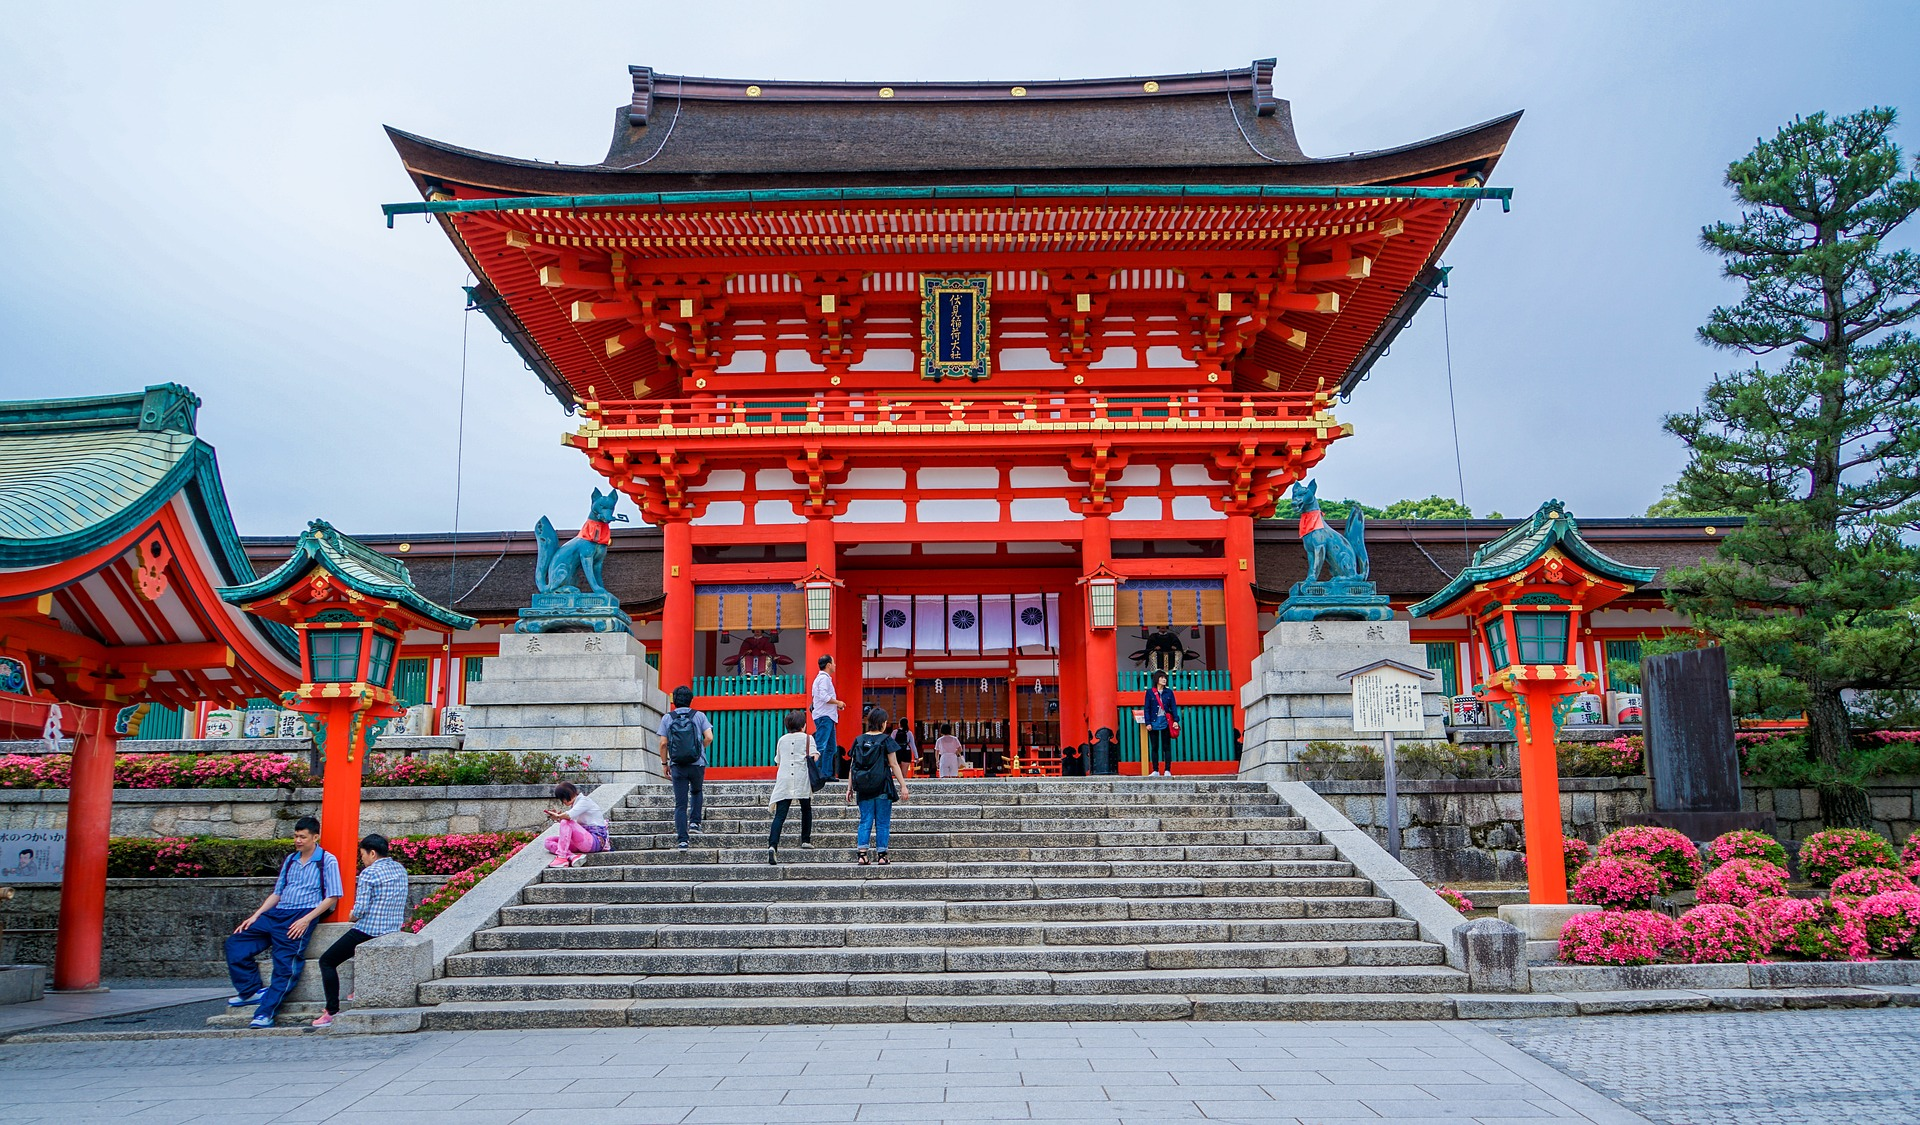 Fushimi inari-taisha Shrine, Kyoto, Japan